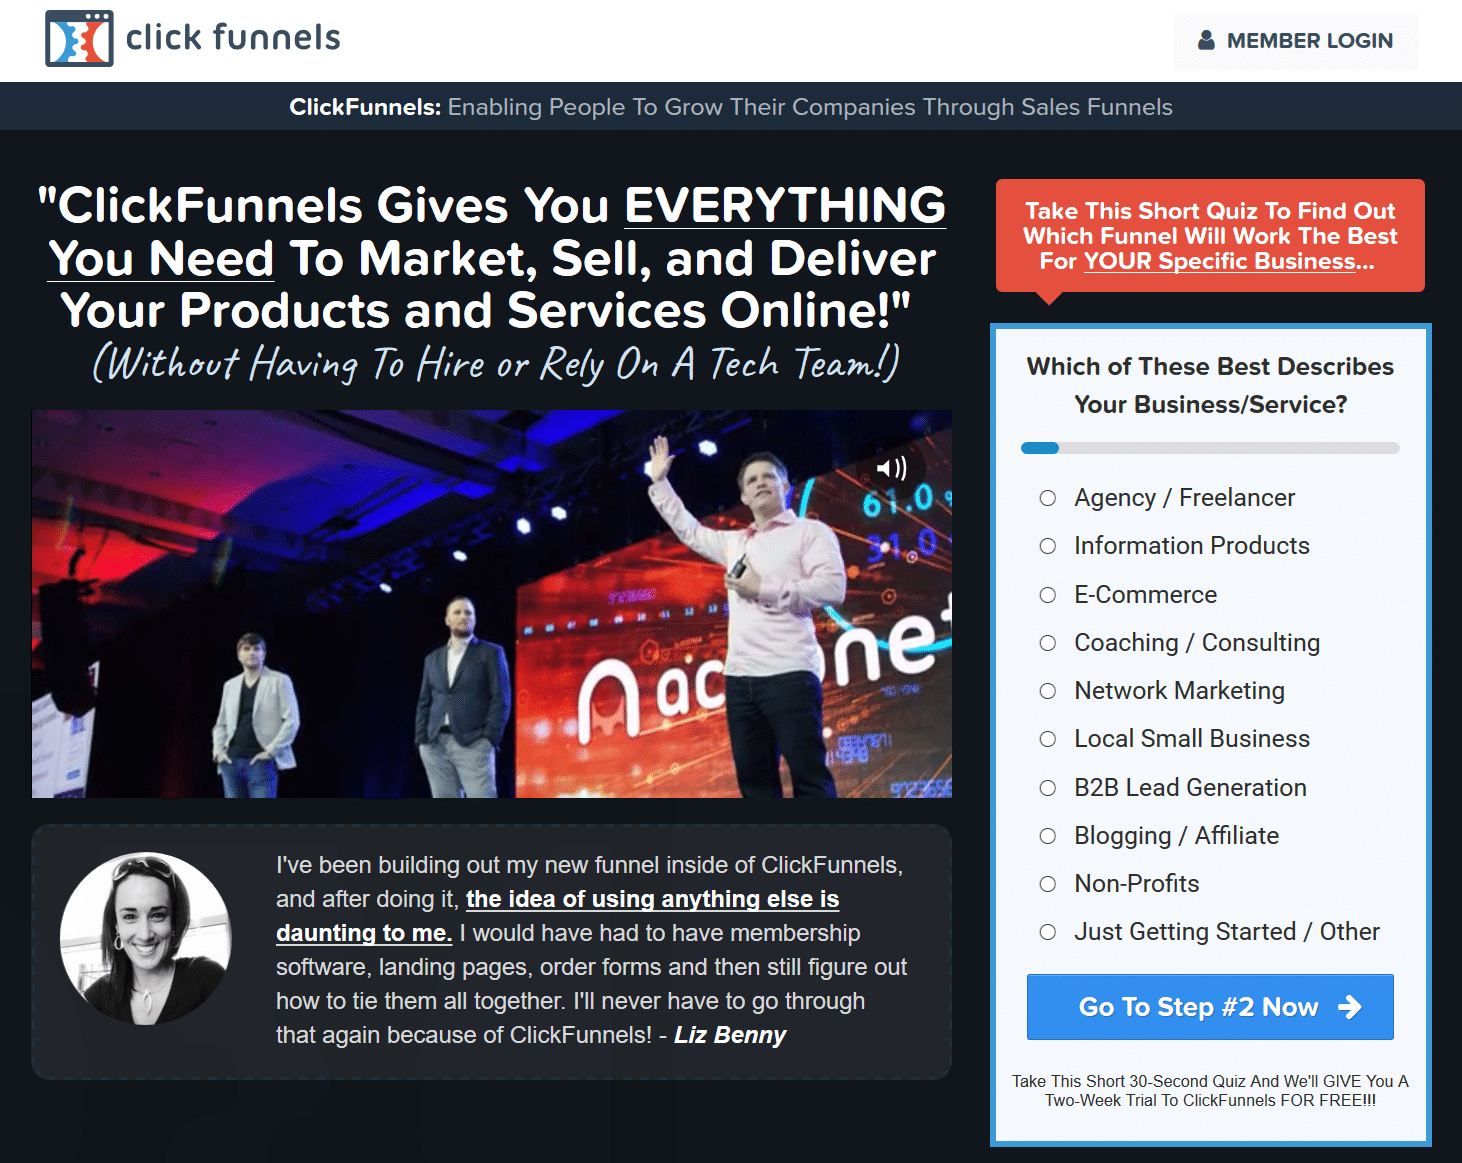 How Do I Get An Email Notification When Someone Submits A Form In Clickfunnels